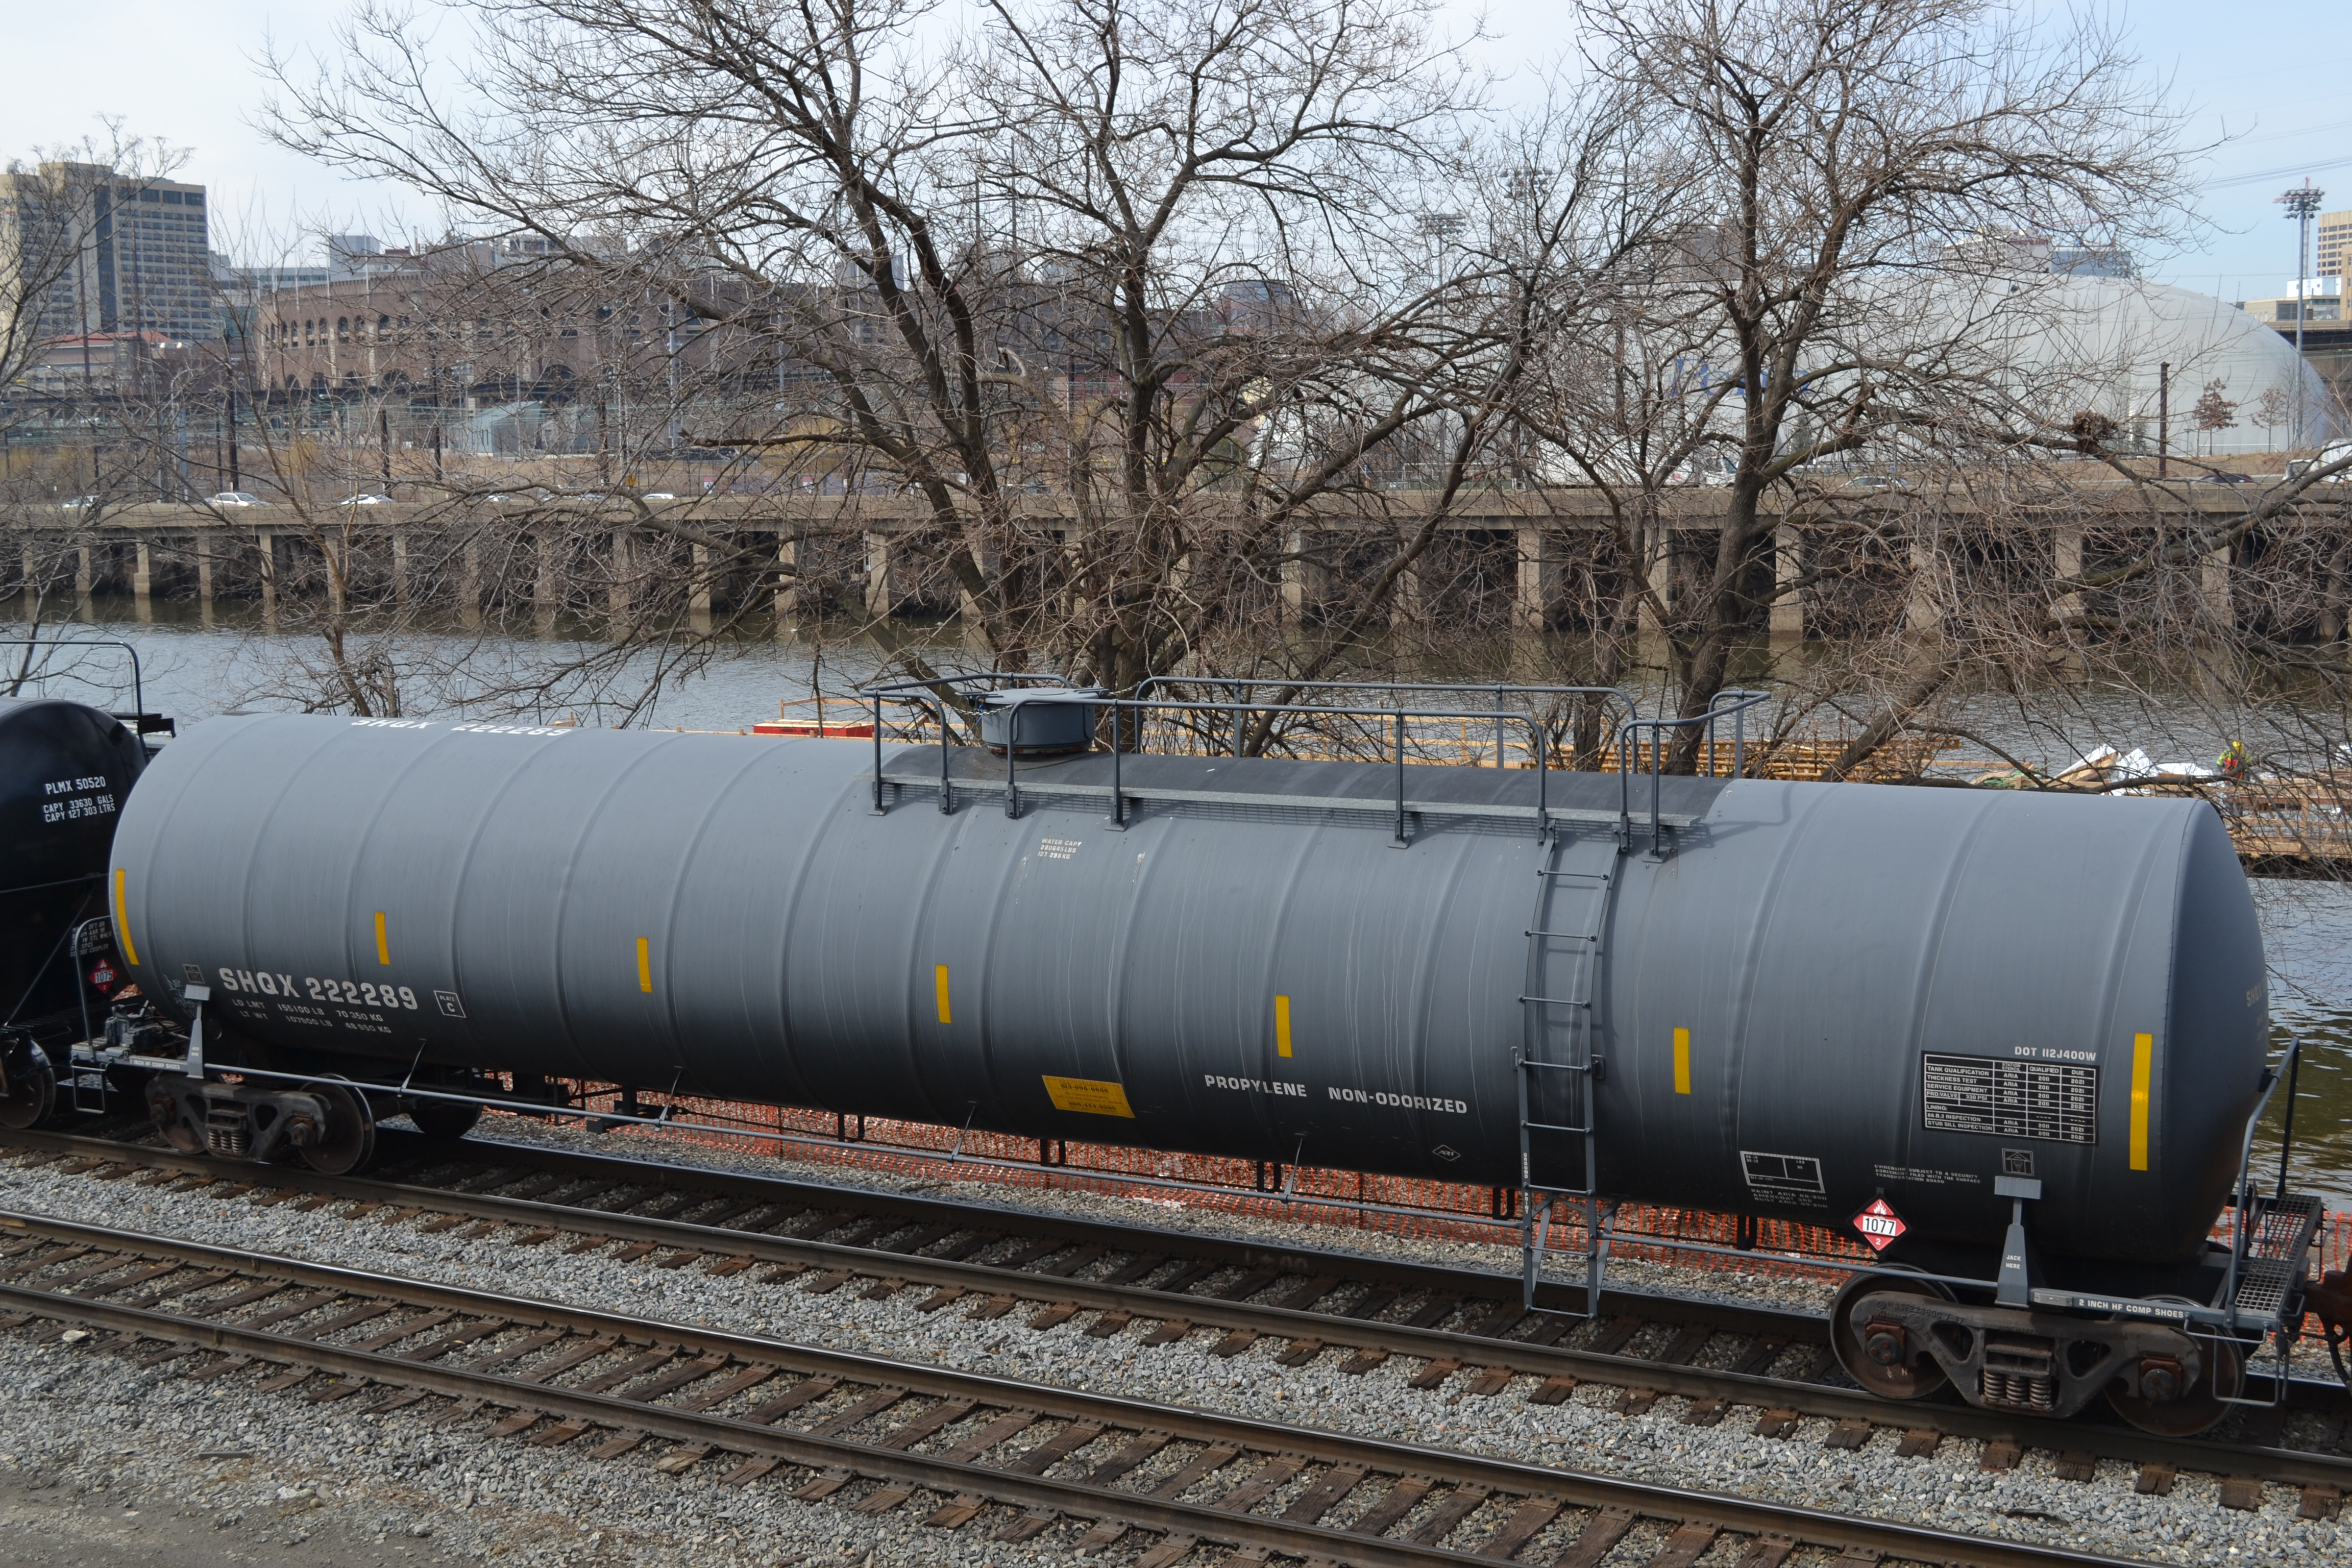 Freight cars on CSX tracks along the Schuylkill River